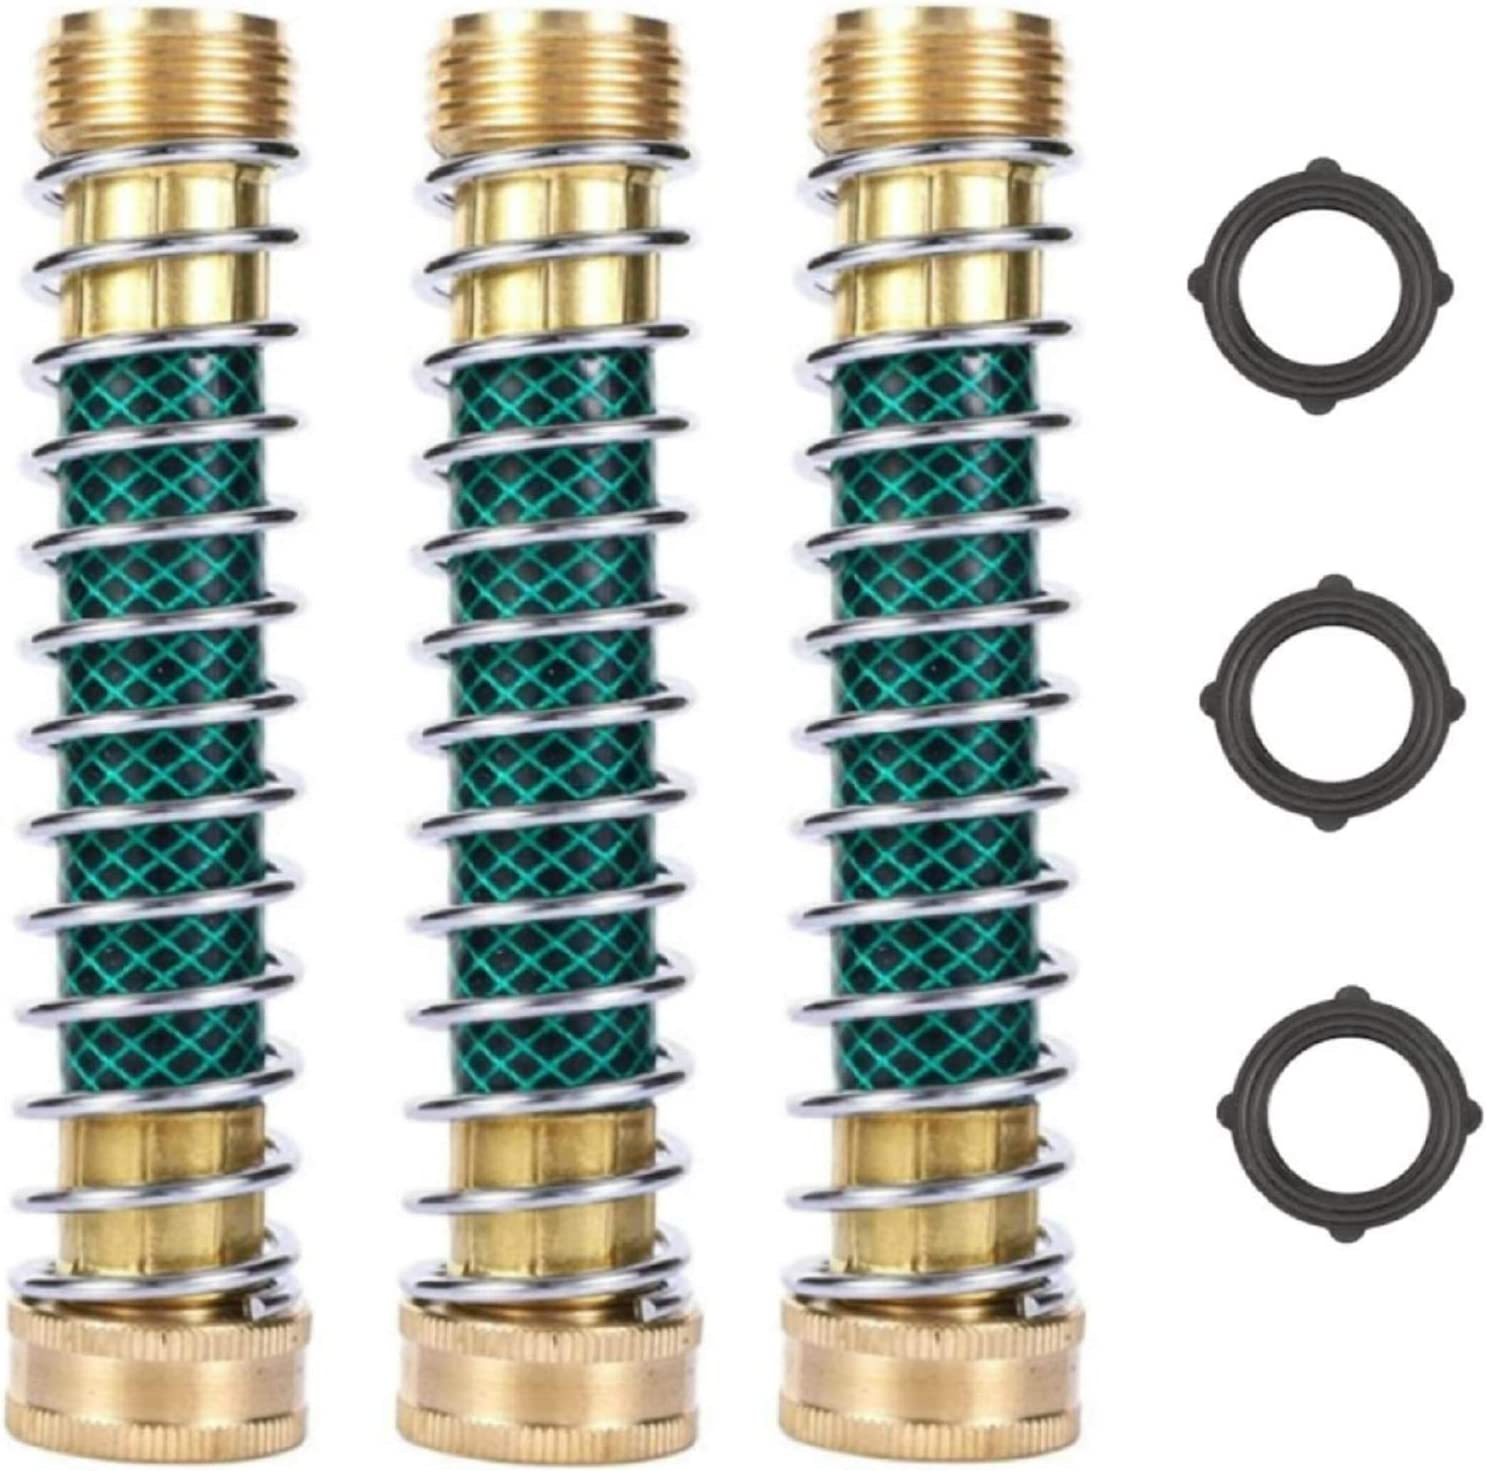 RouLiPouLi Garden Hose Coiled Spring Protector with Solid Brass Faucet Hoses Coupling Adapter Extension 3Pcs